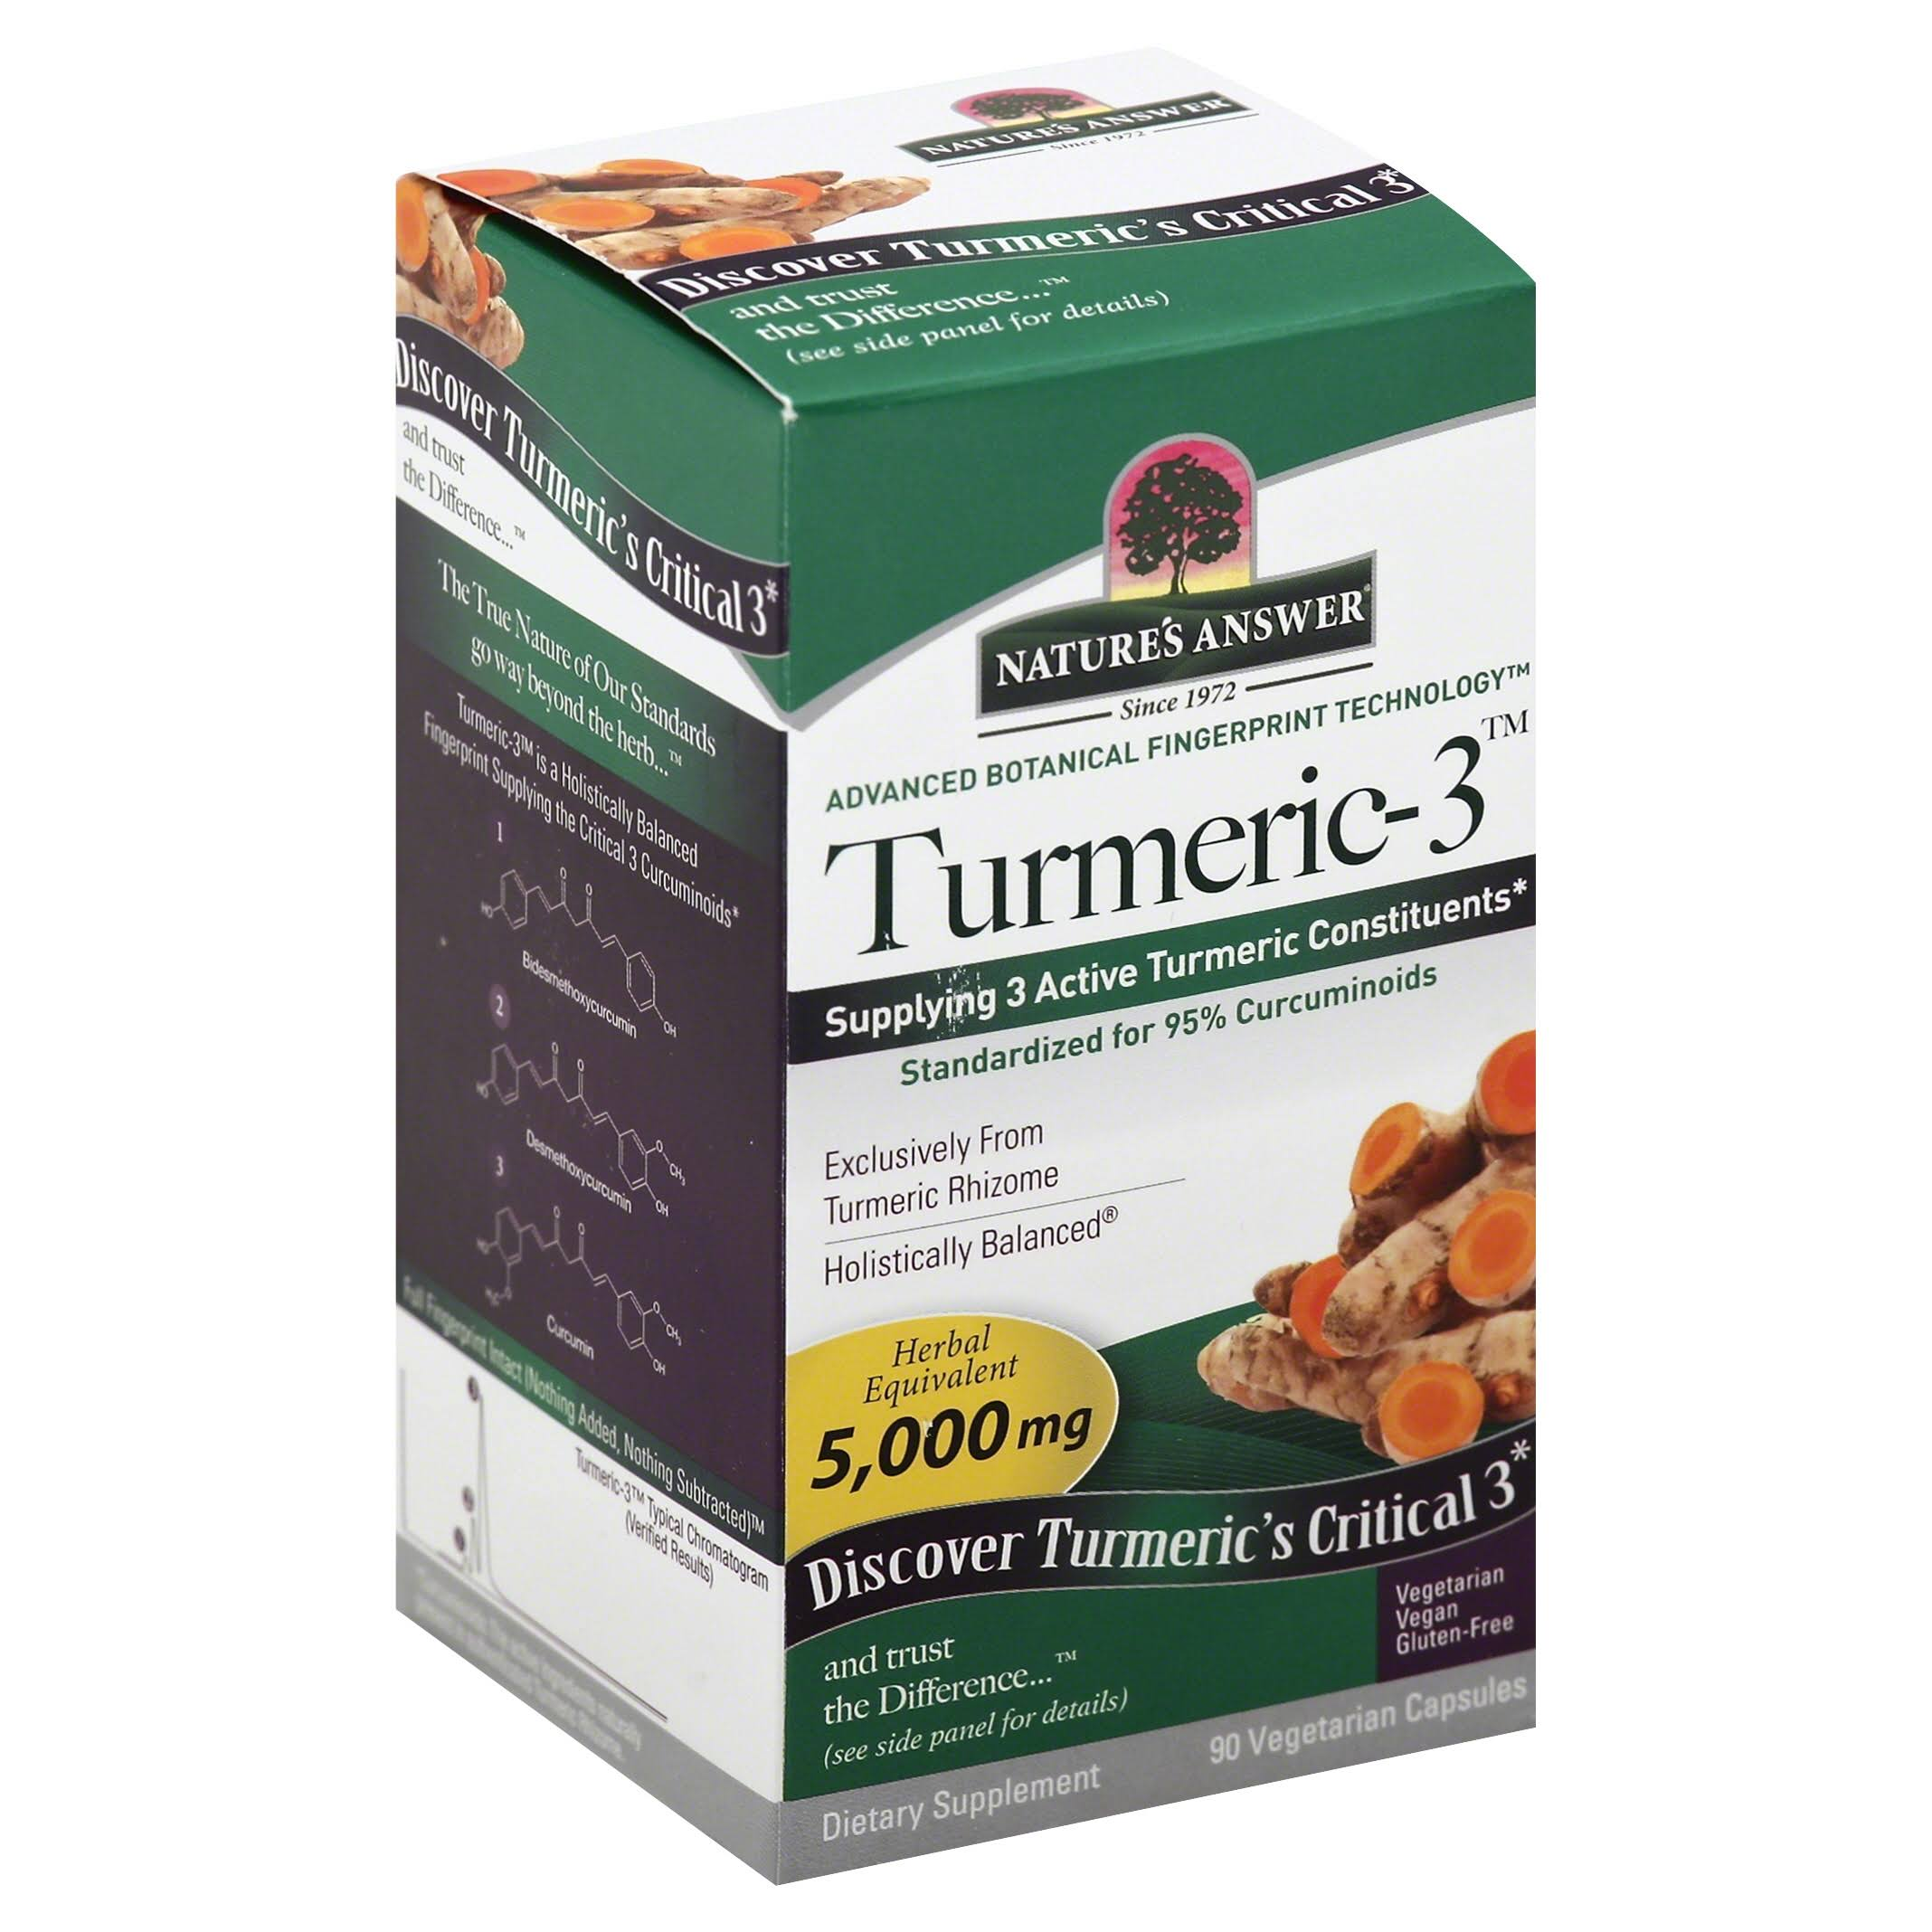 Nature's Answer Turmeric-3 Supplement - 90 Vegetarian Capsules